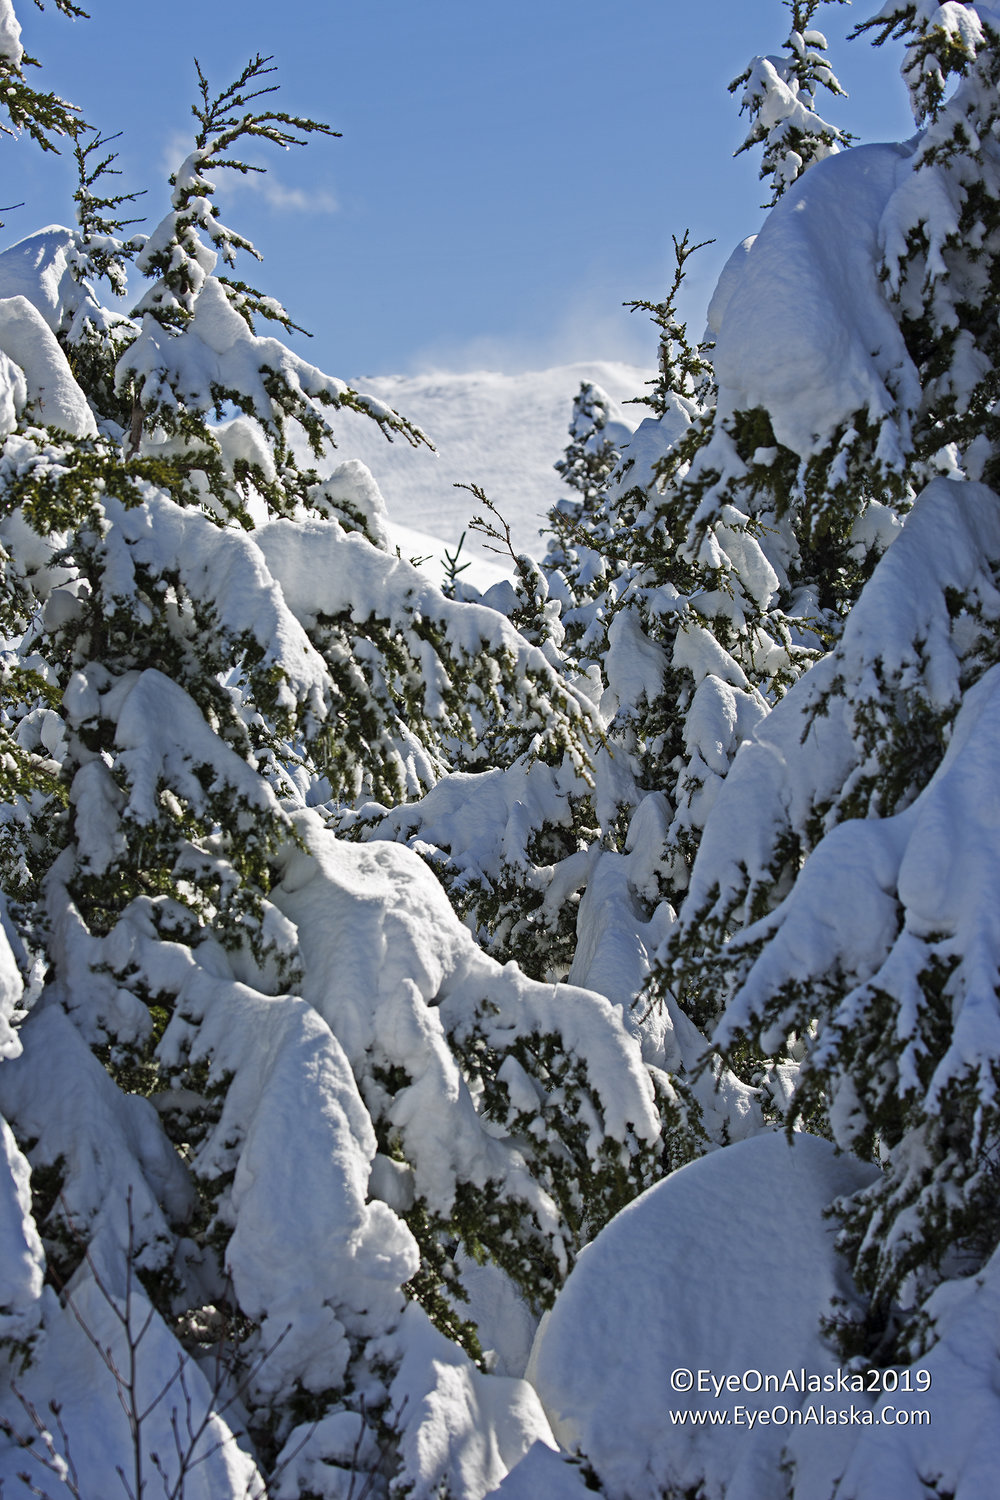 The snow in the trees is just incredible.  But there's high wind up on the ridge of the Chugach Mountains behind us, so I'm expecting this won't last long.